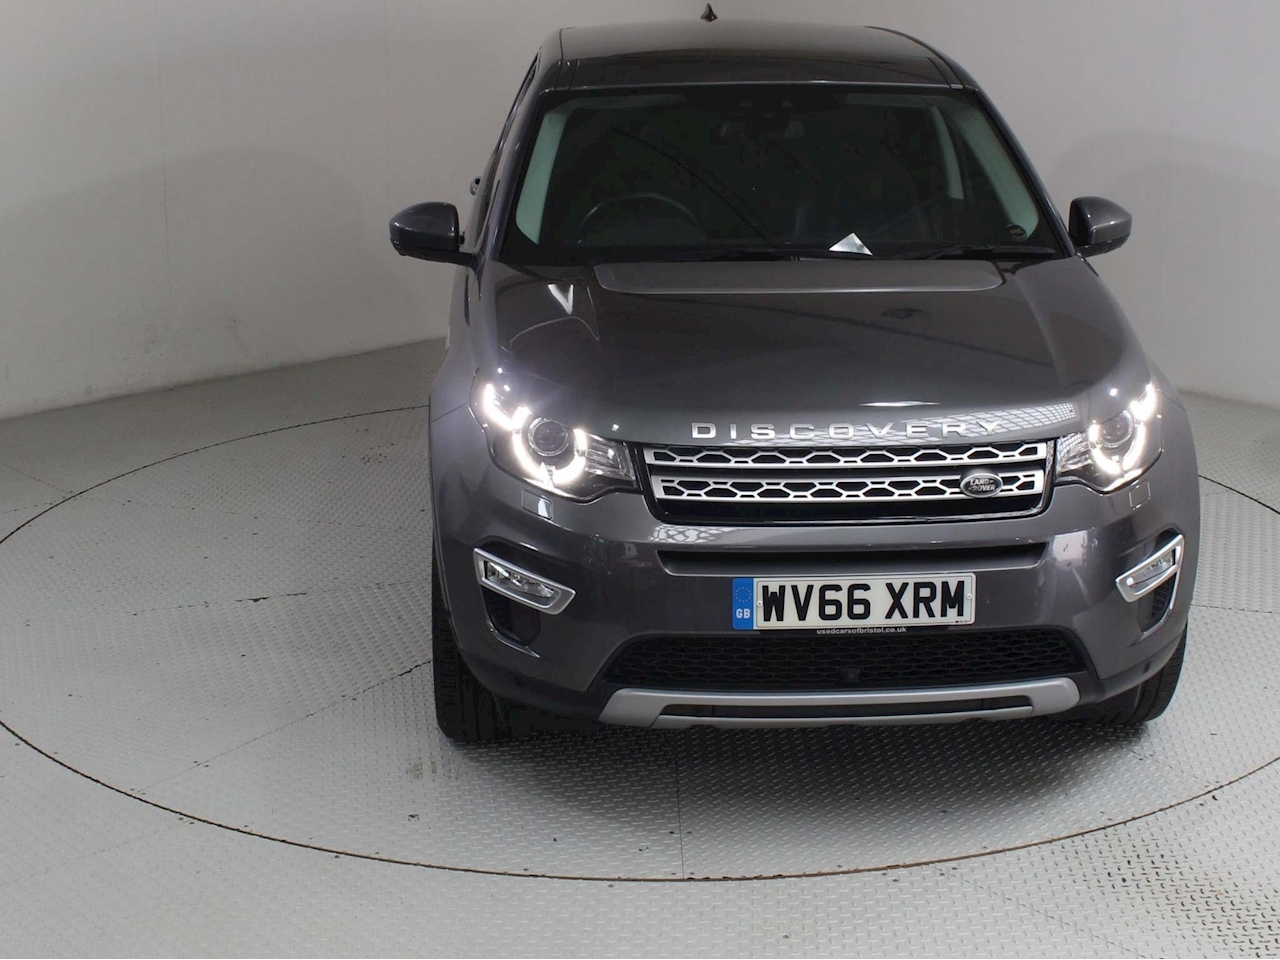 Land Rover Discovery Sport Td4 Hse Luxury Estate 2.0 Automatic Diesel